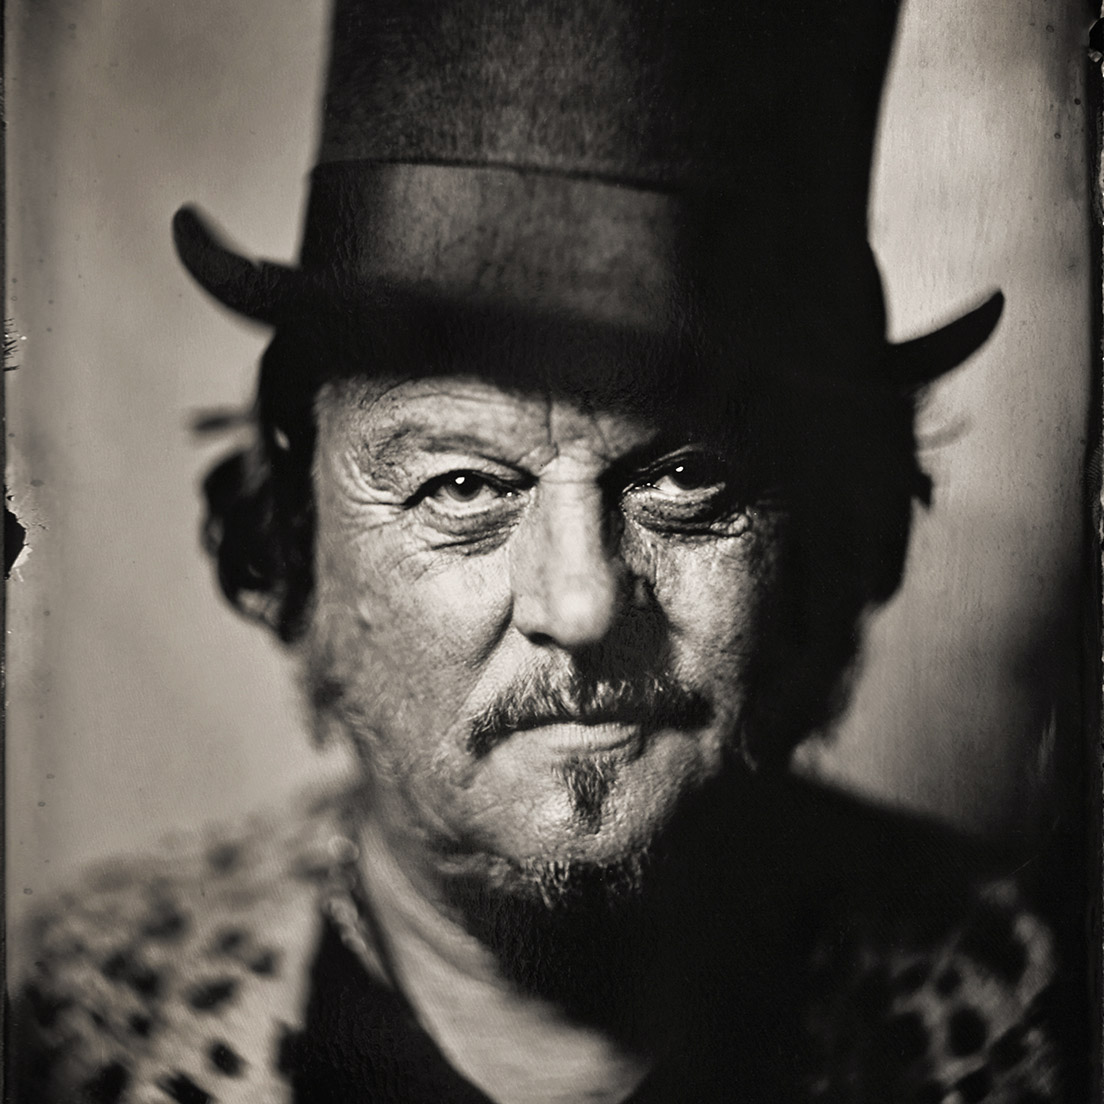 Portrait of Zucchero for Universal Music. Album Artwork Photography